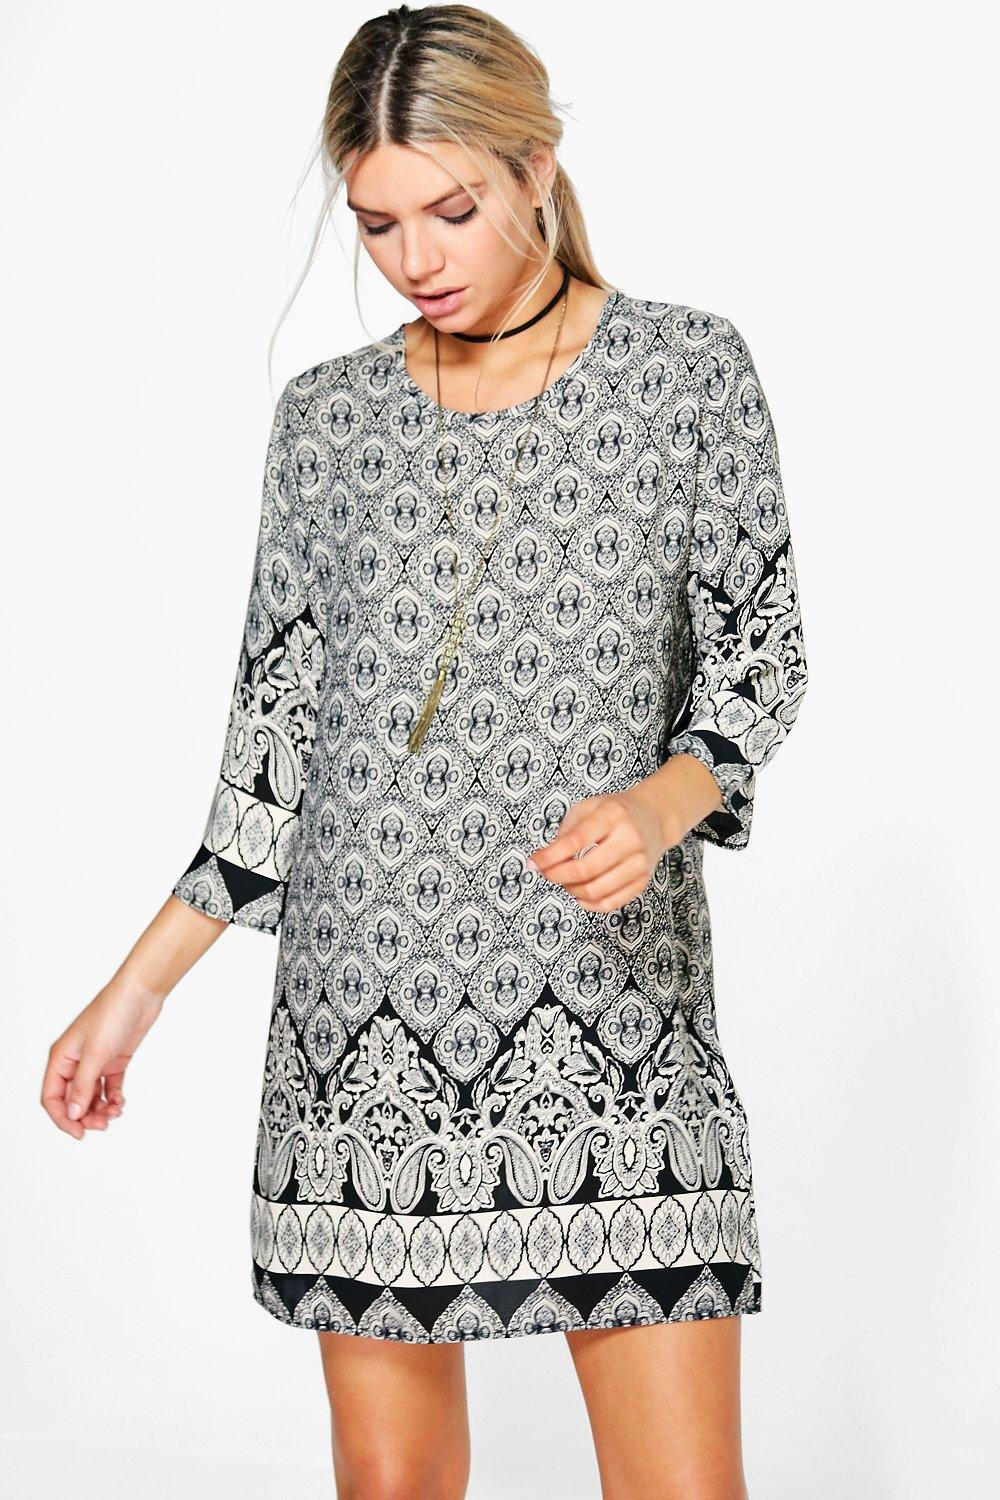 Karen Paisley Border Print Shift Dress